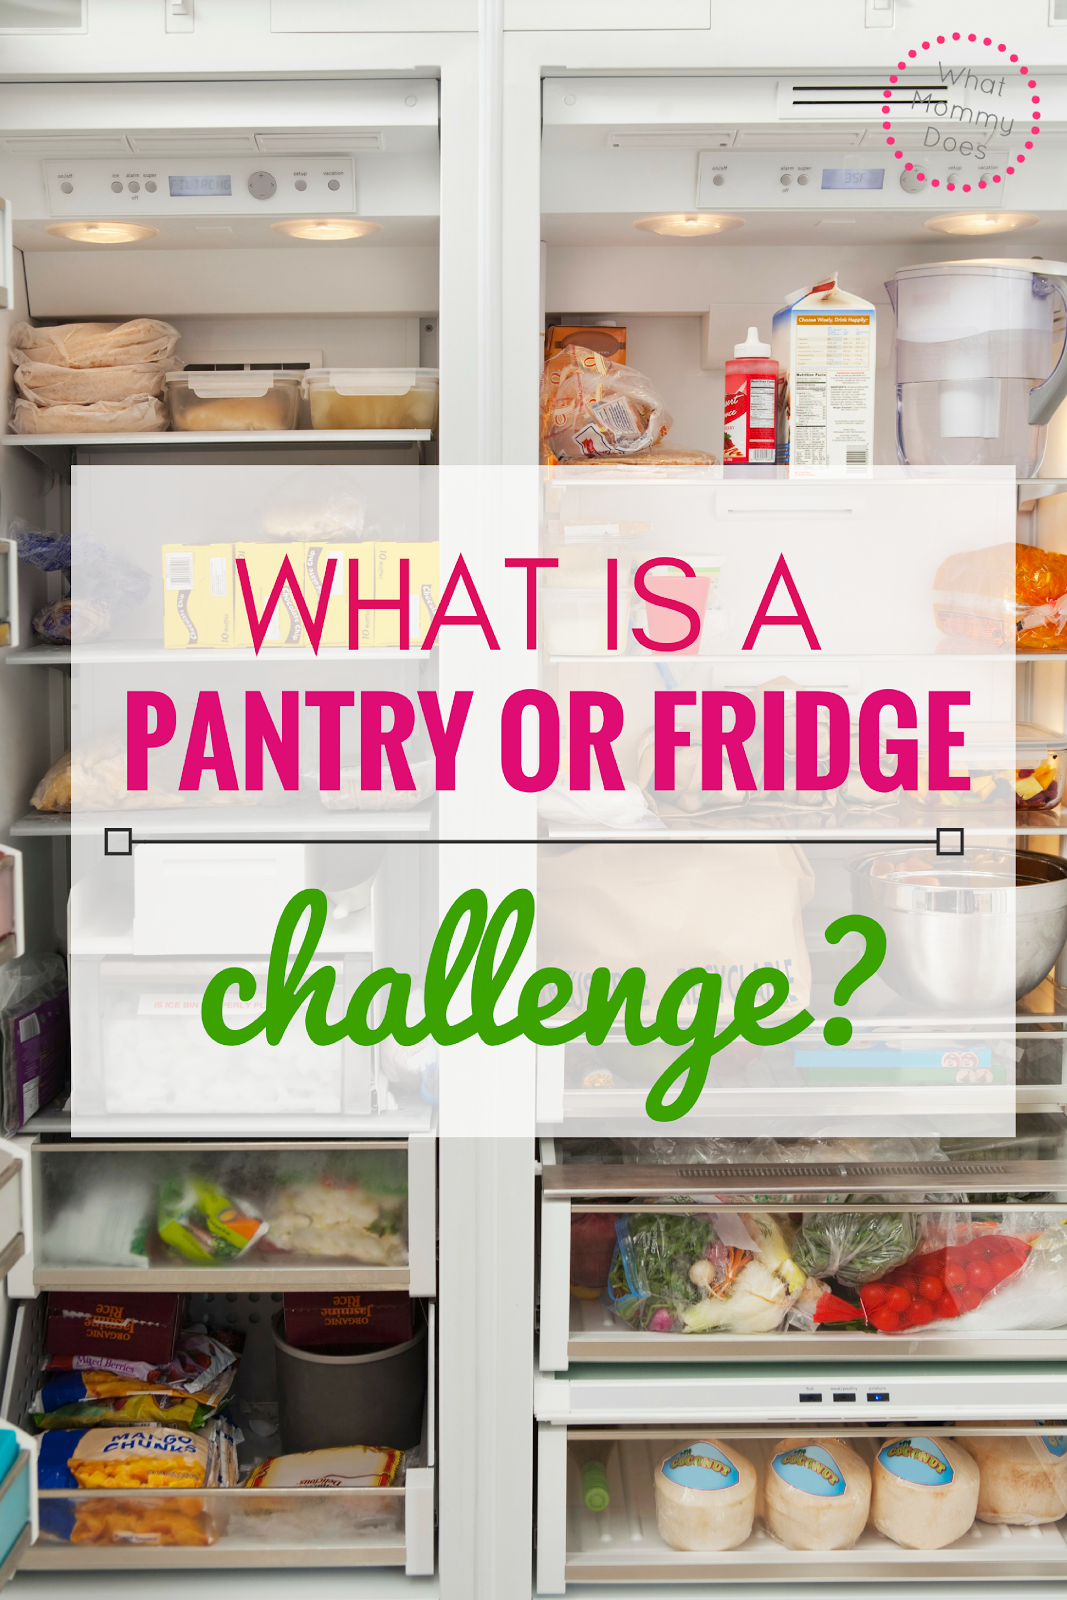 Take this no spend pantry challenge to save money on groceries and find new recipes for your family to enjoy!